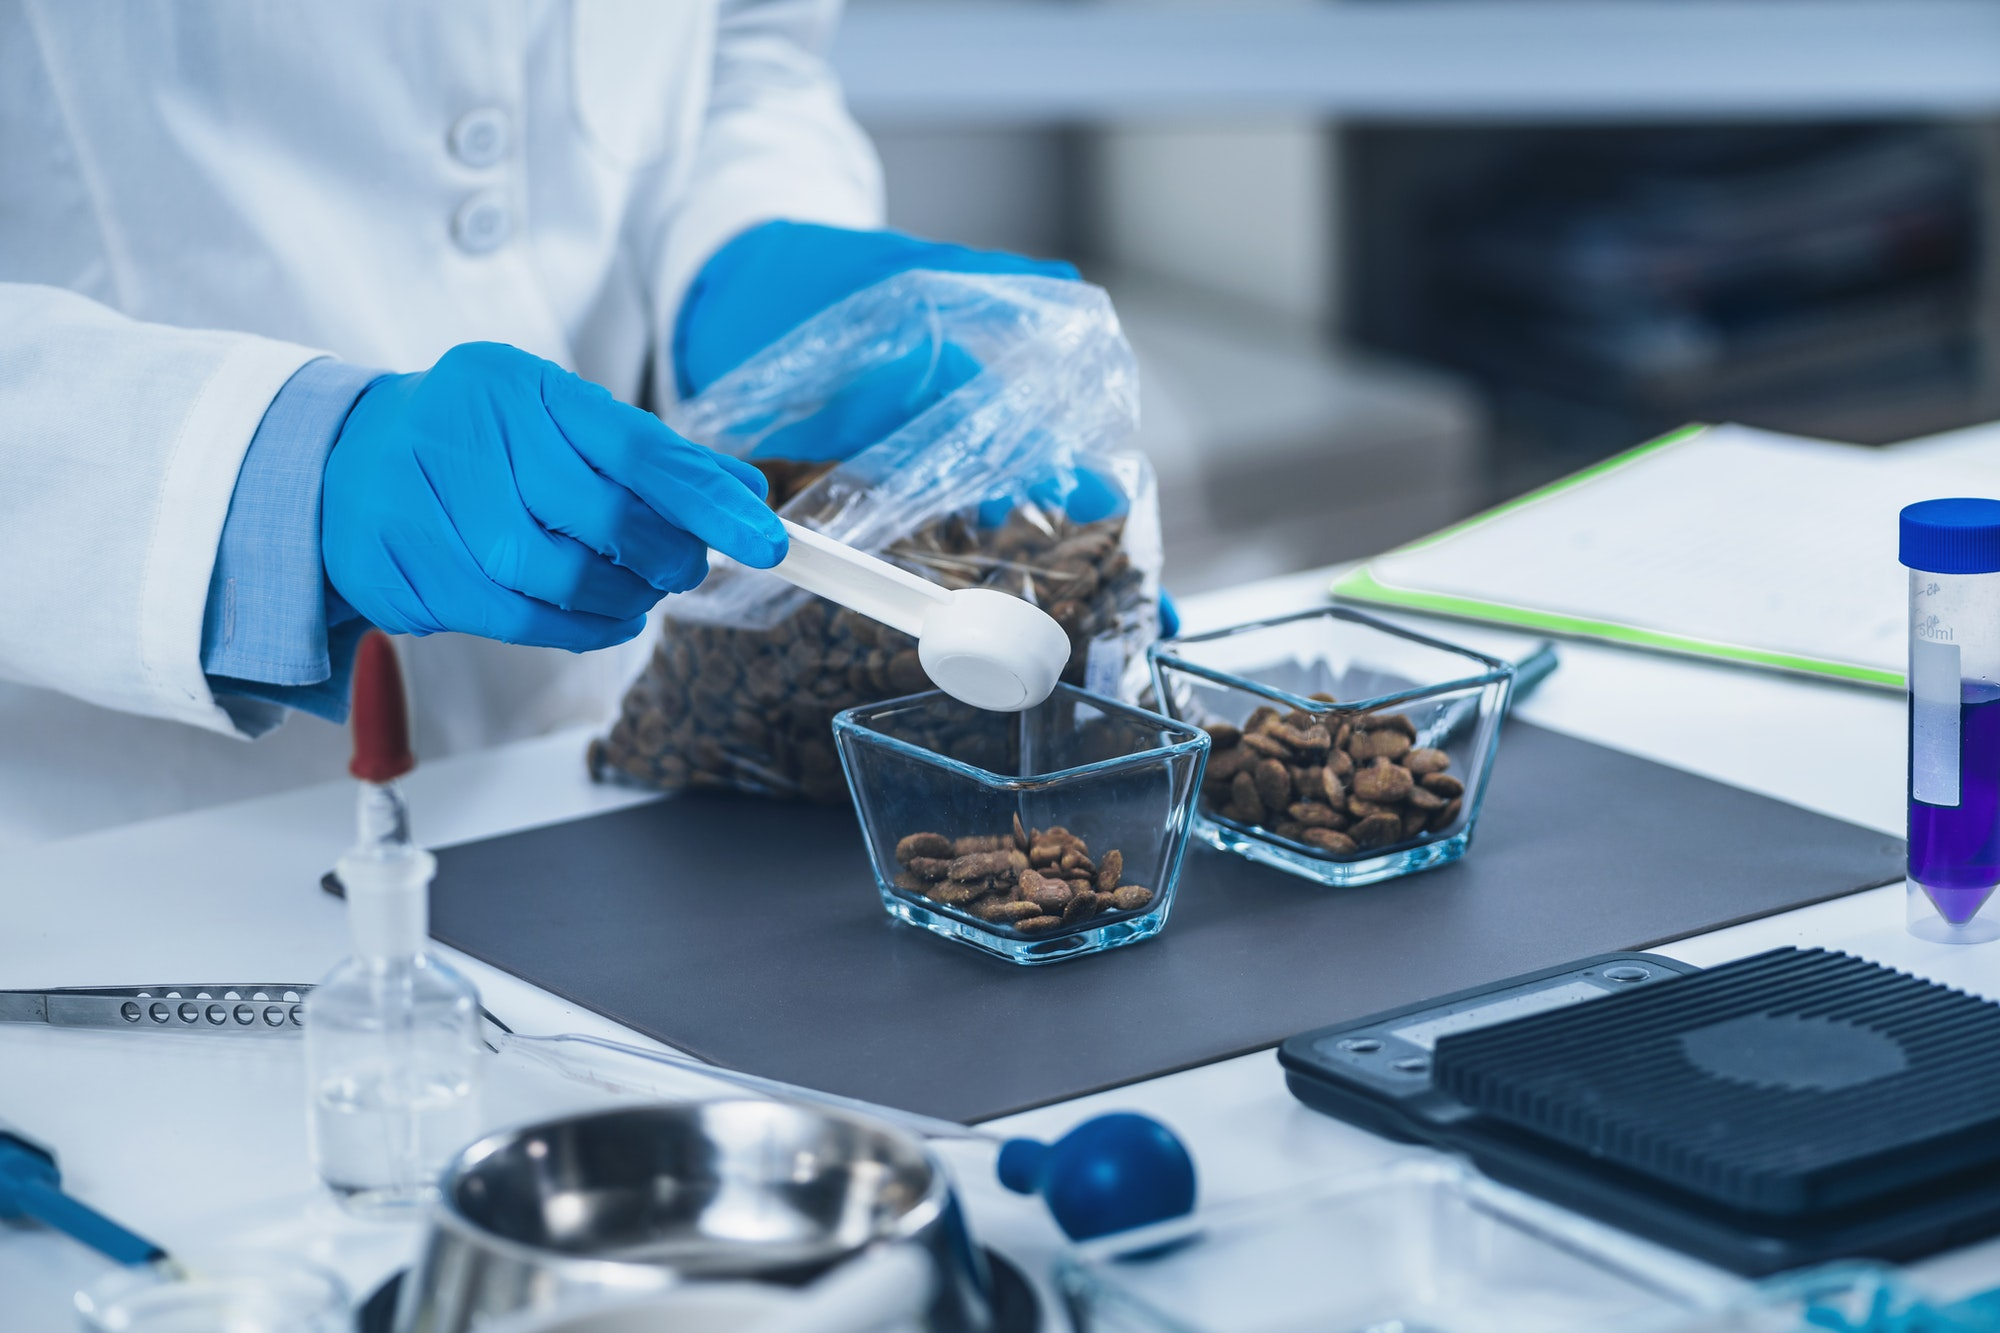 Pet Food Quality Control. Sample Preparation of Dry Dog Food for Testing in Laboratory